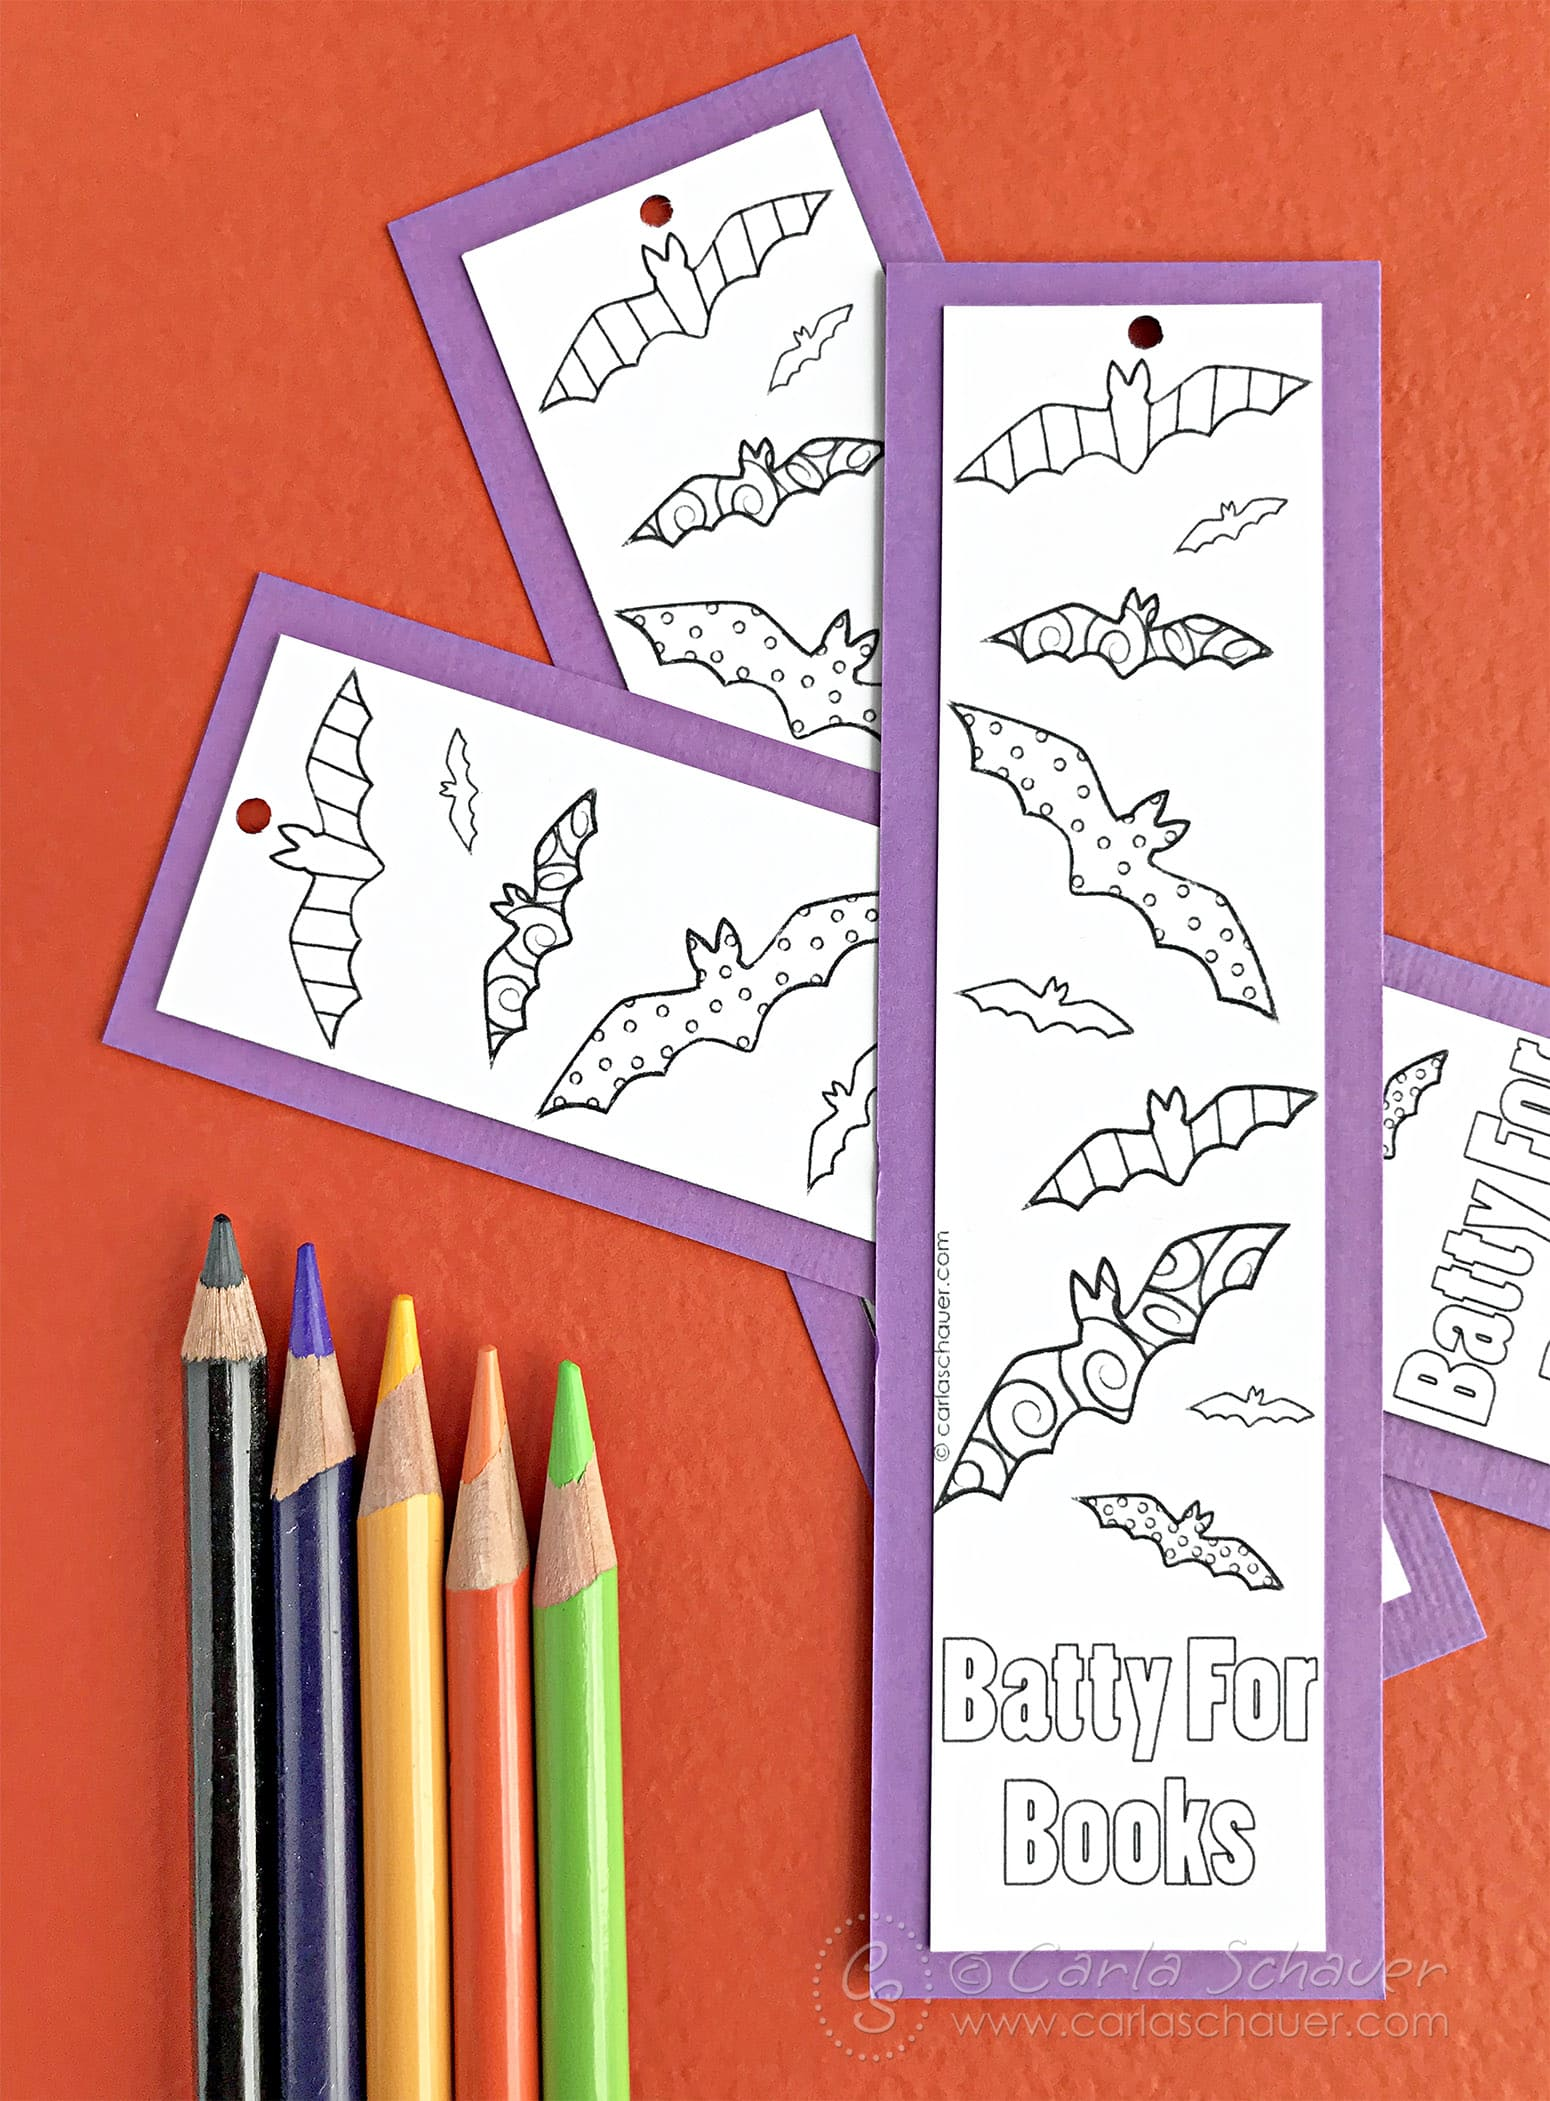 Black and white bat halloween bookmarks with purple borders on orange background with colored pencils.